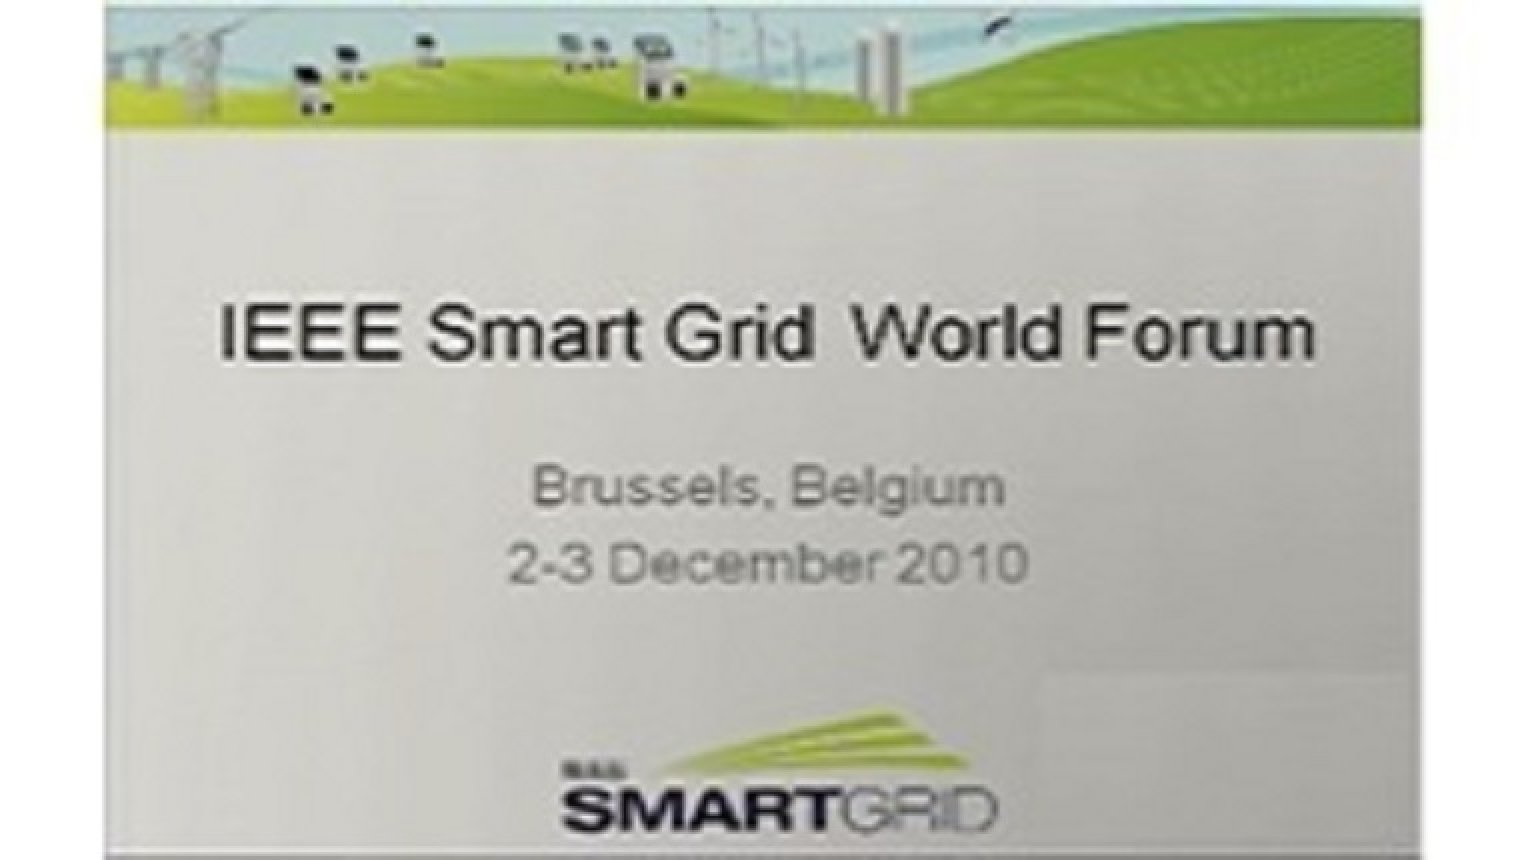 IEEE Smart Grid World Forum - Session 2 Panel Discussion